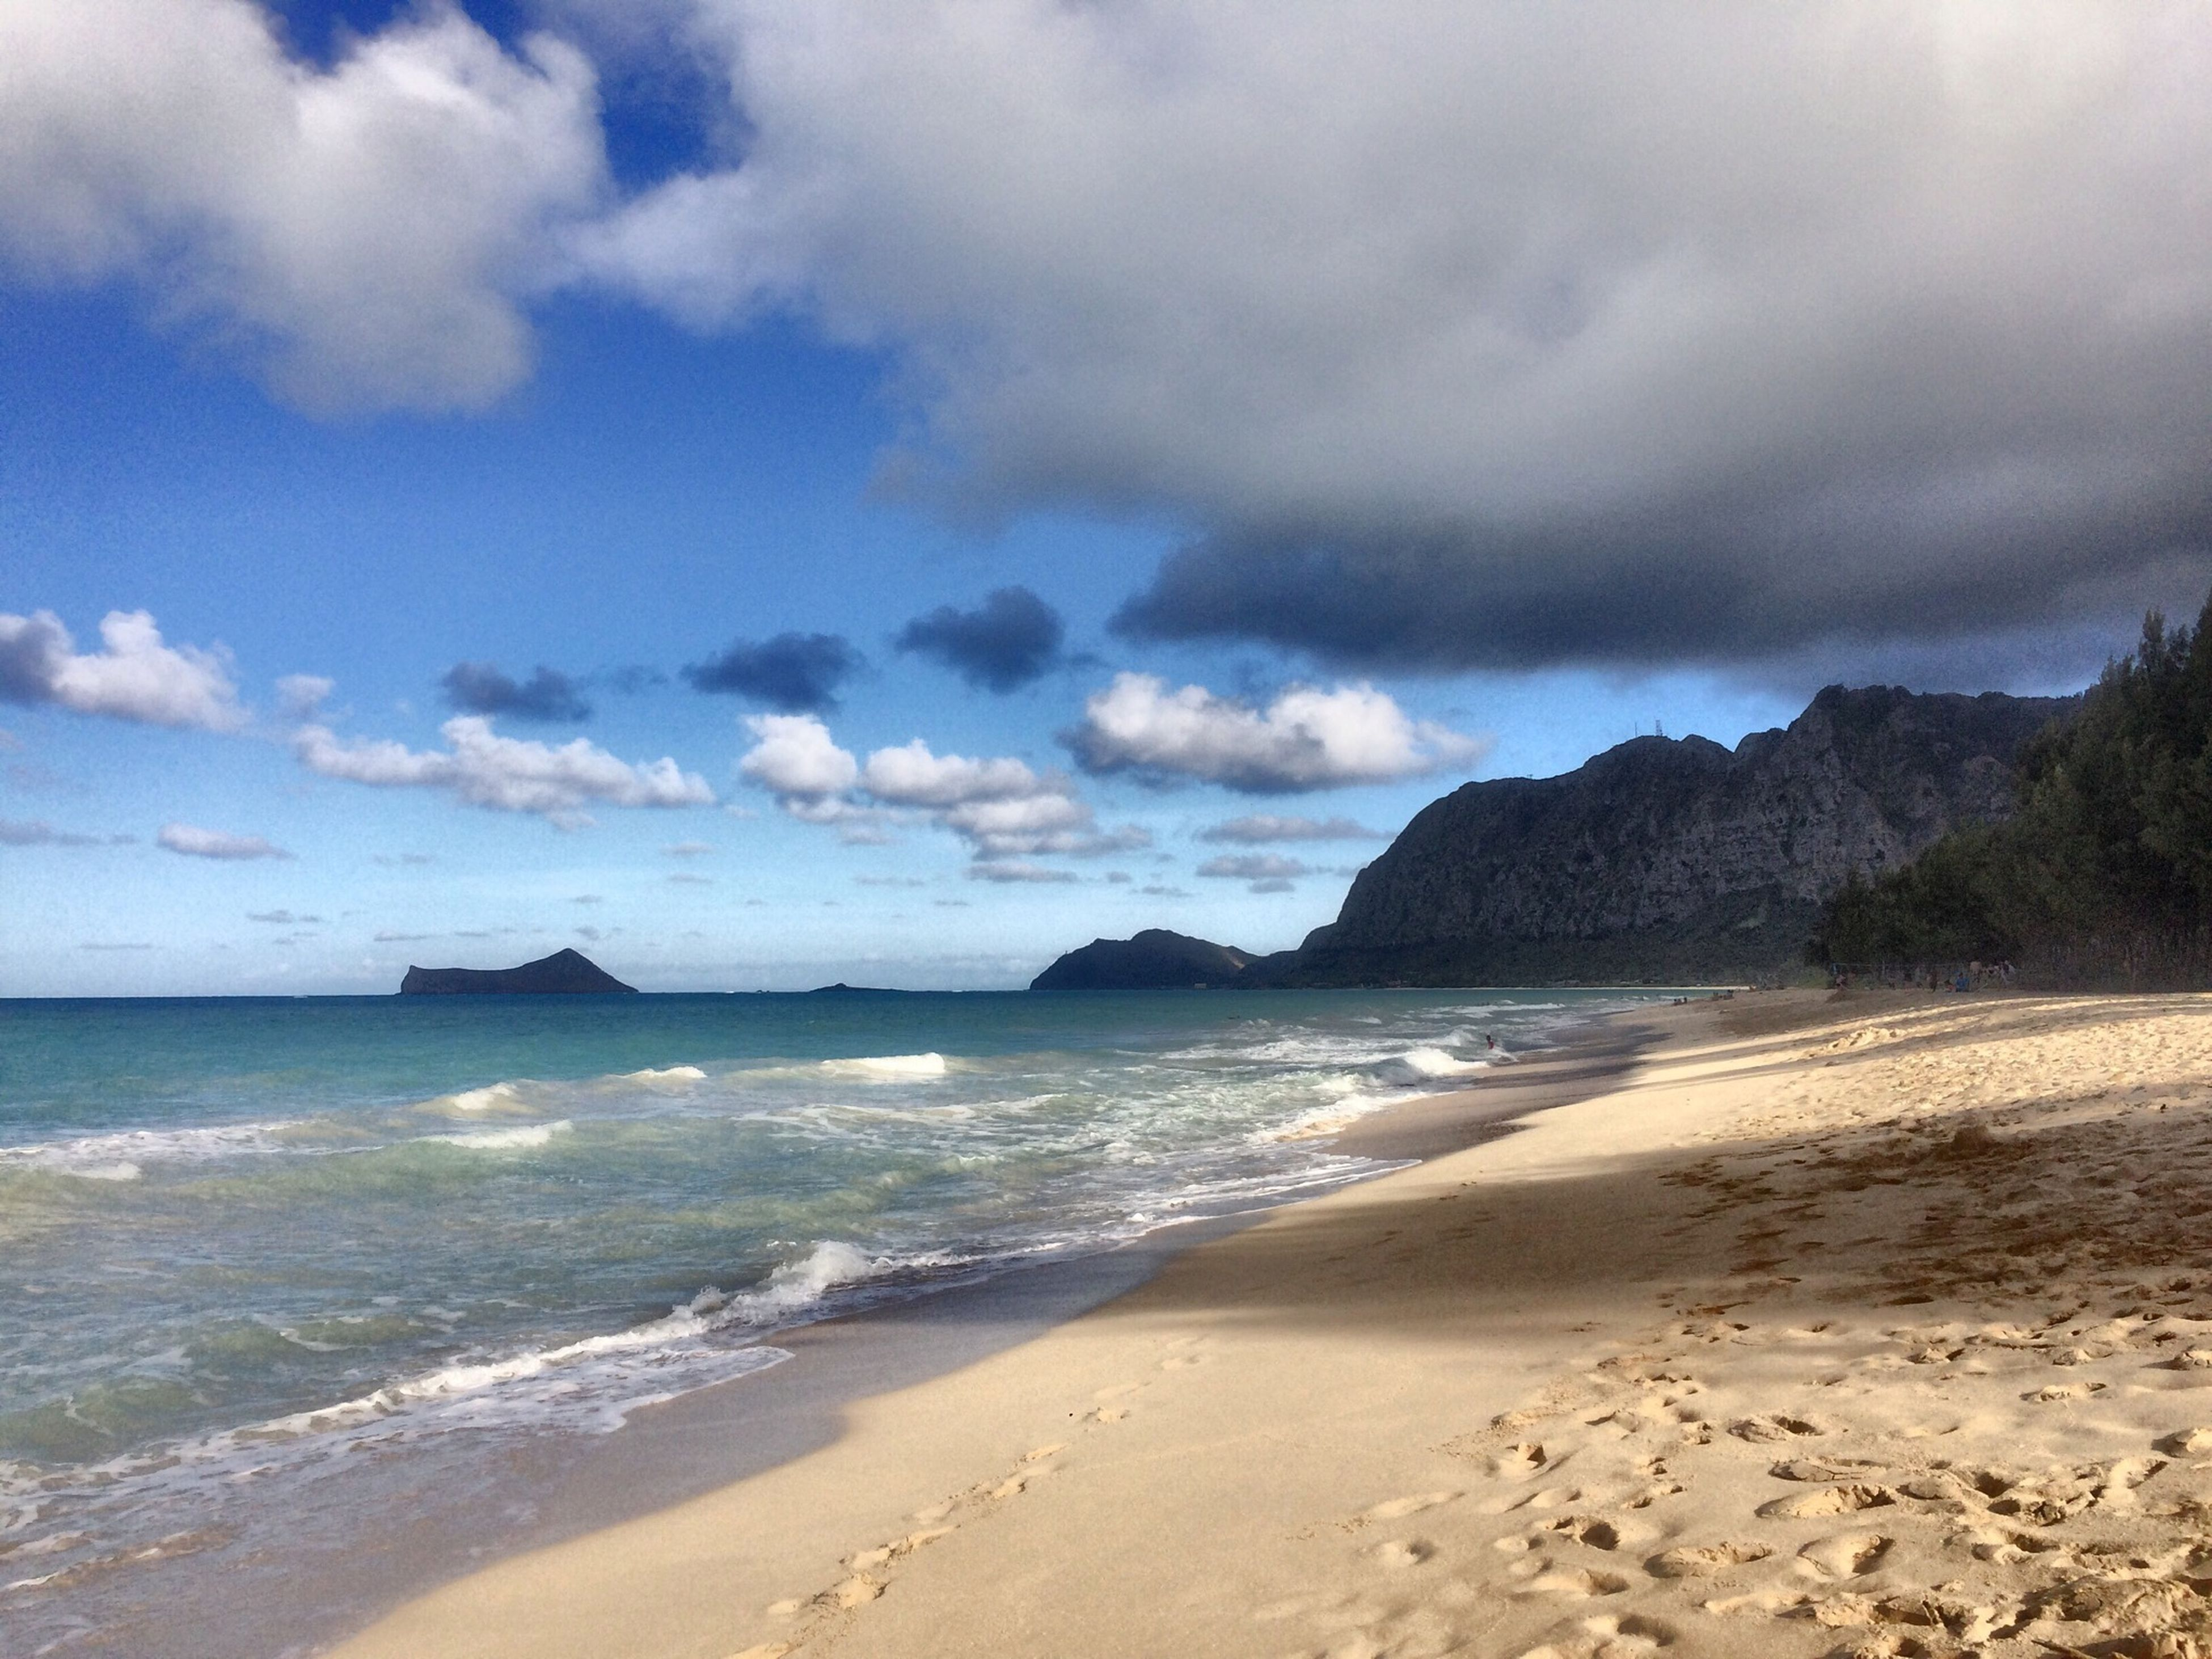 sea, beach, water, sky, shore, scenics, tranquil scene, tranquility, beauty in nature, cloud - sky, sand, horizon over water, nature, cloudy, cloud, coastline, idyllic, wave, mountain, remote